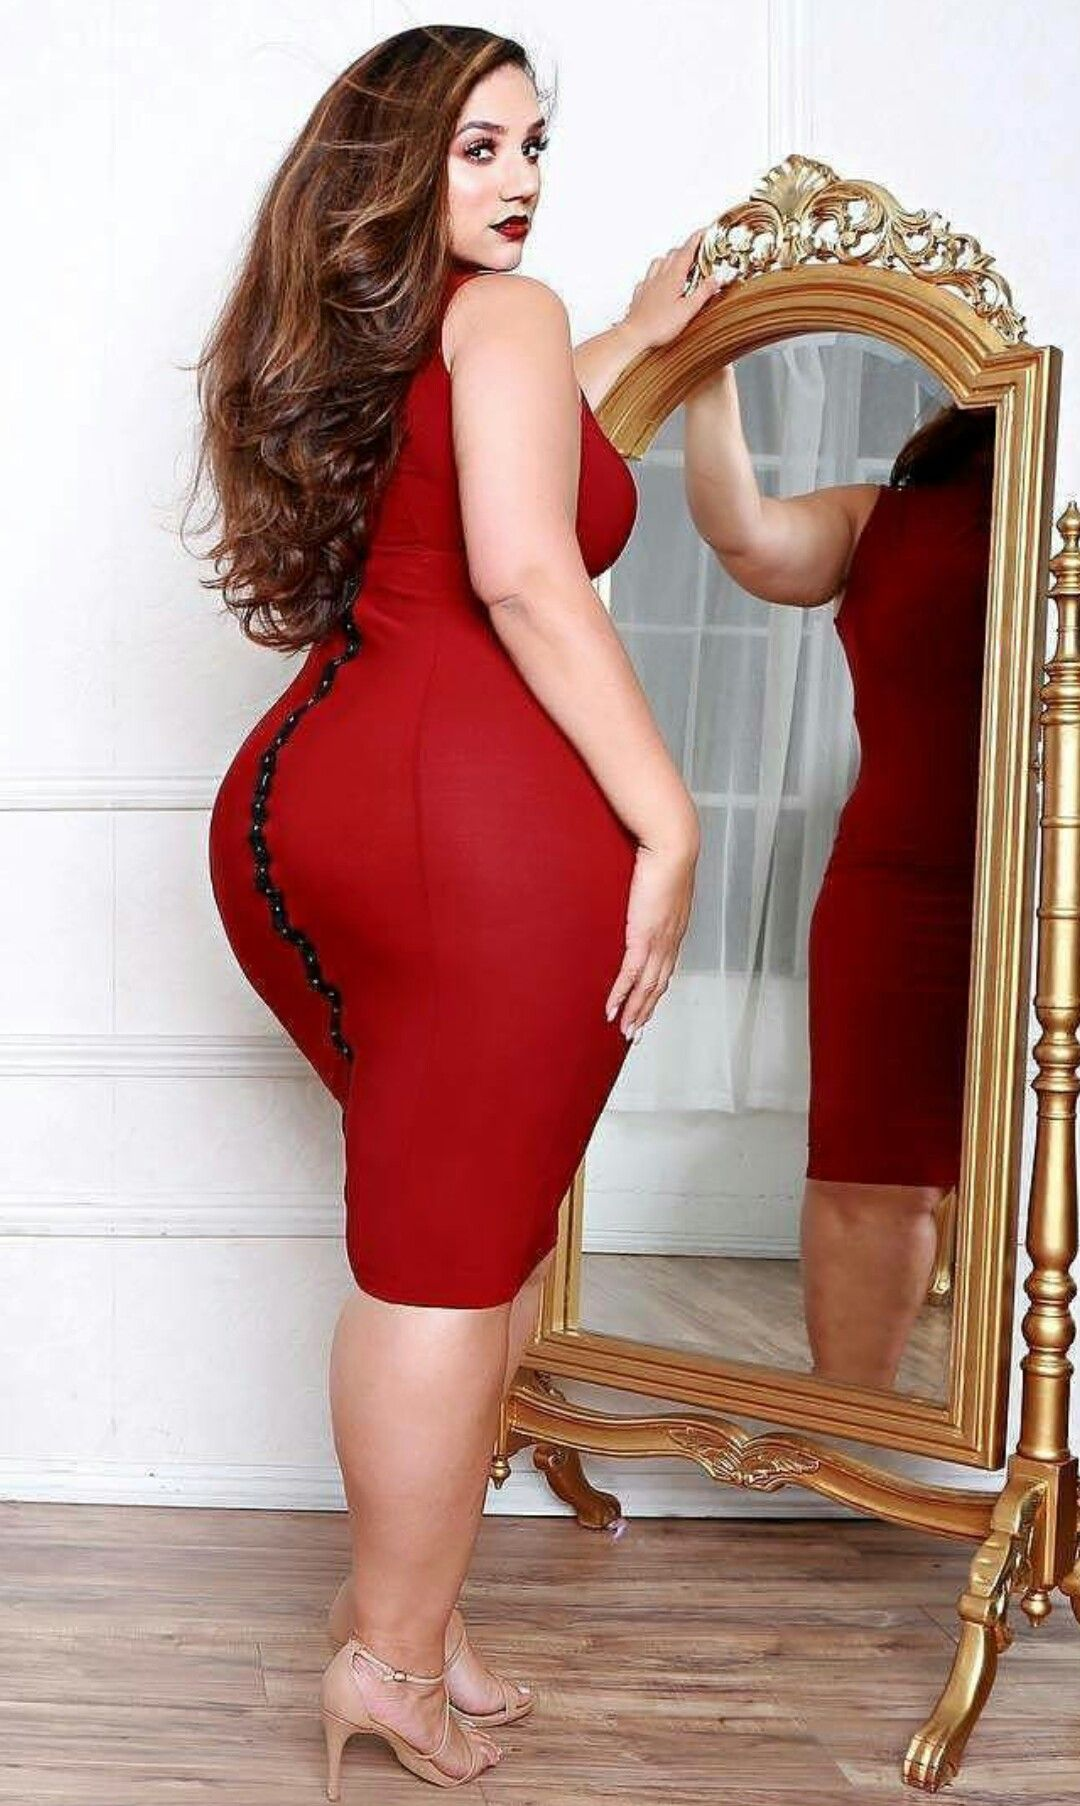 beautiful bbw | naturally | pinterest | curvy, curves and nice